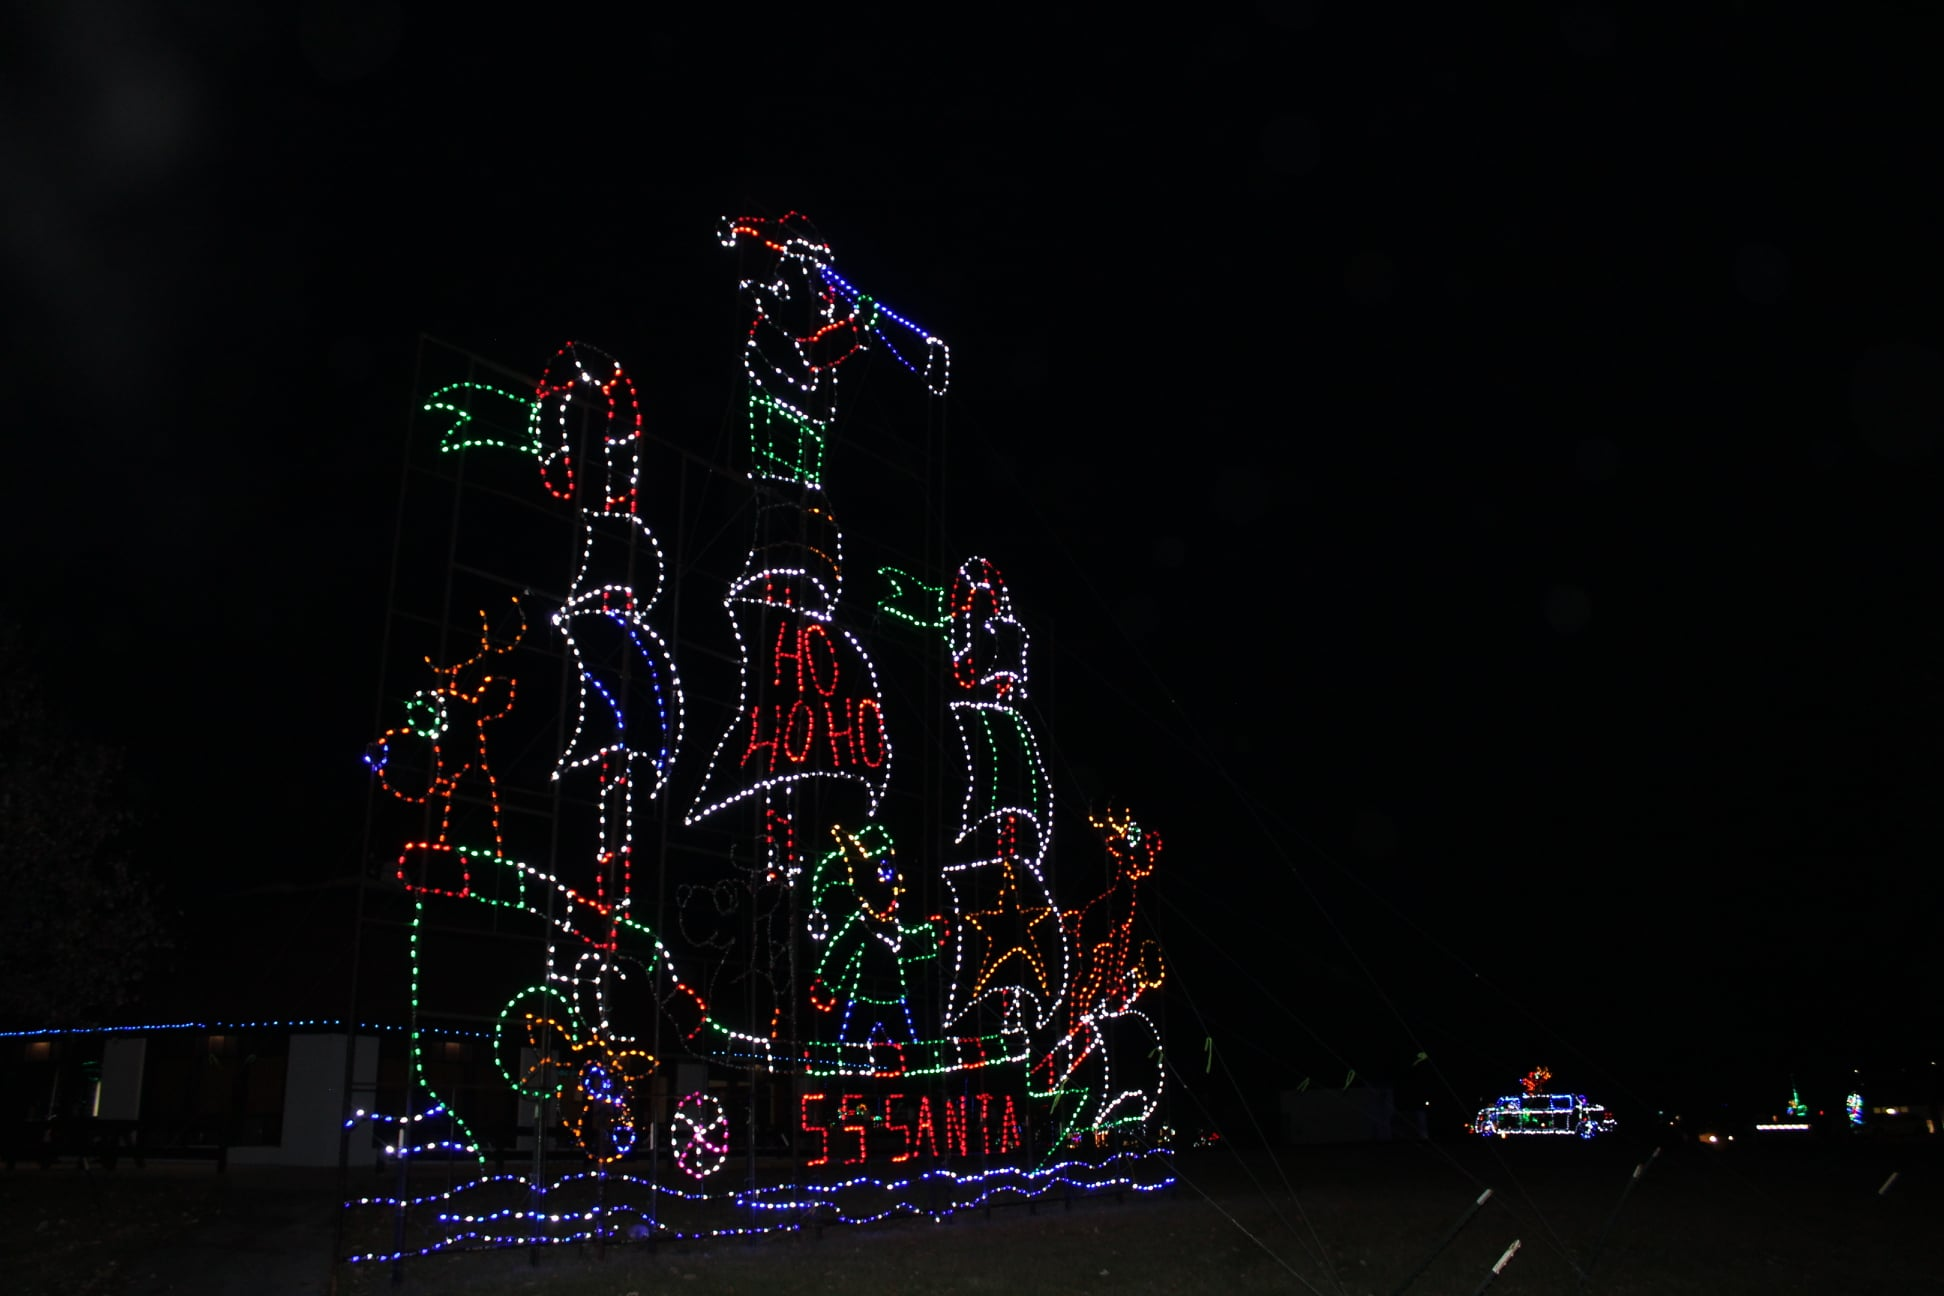 Holiday light display against  a black night sky.